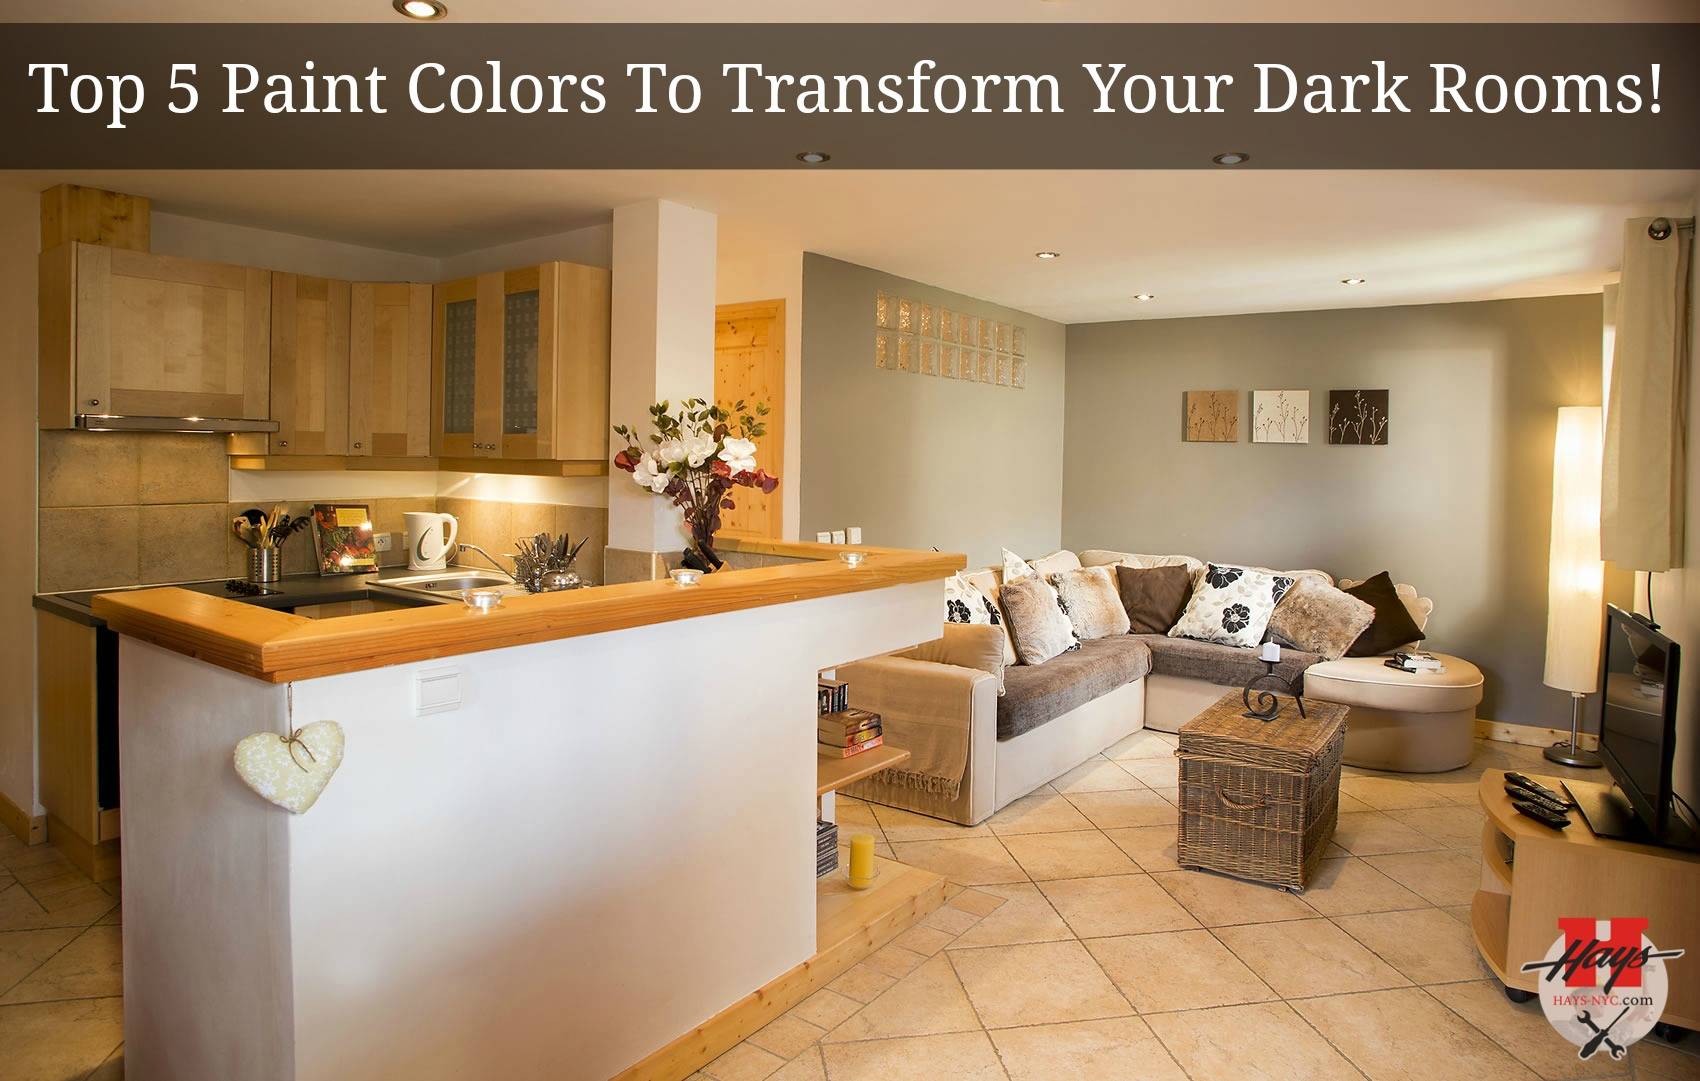 Top 5 Paint Colors To Transform Your Dark Rooms